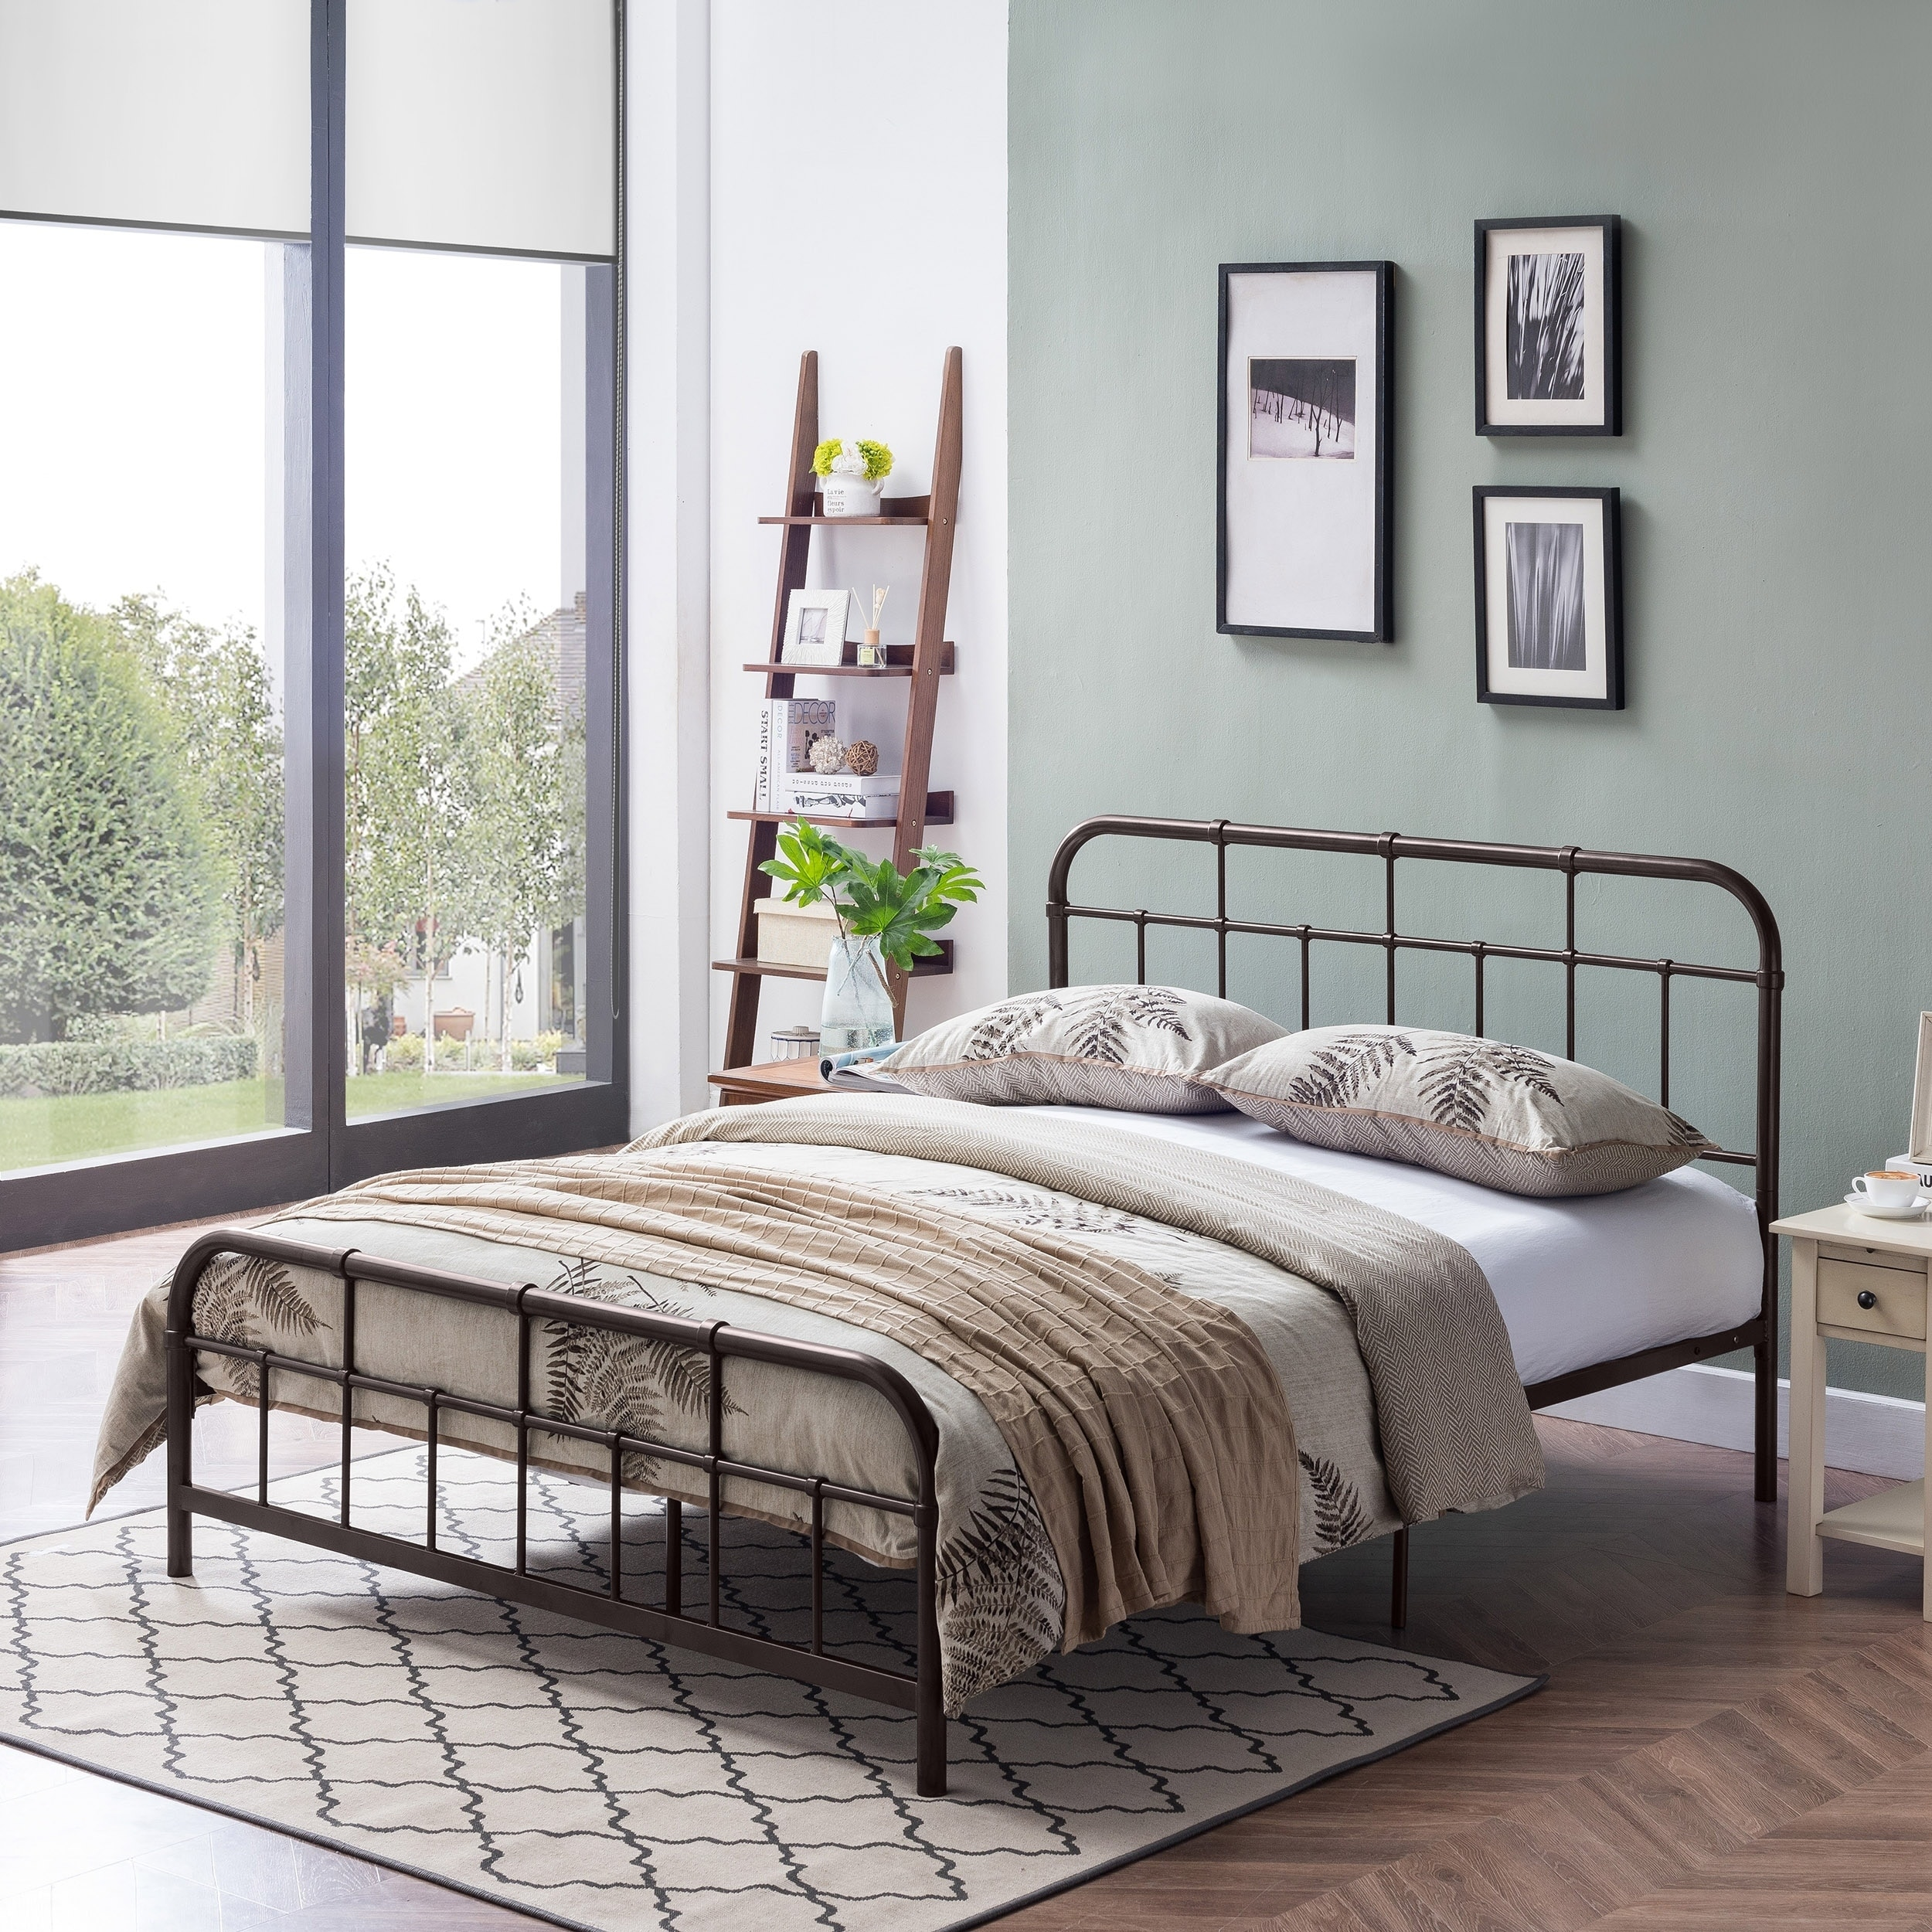 Berthoud Queen Size Iron Bed Frame By Christopher Knight Home On Free Shipping Today 24115166